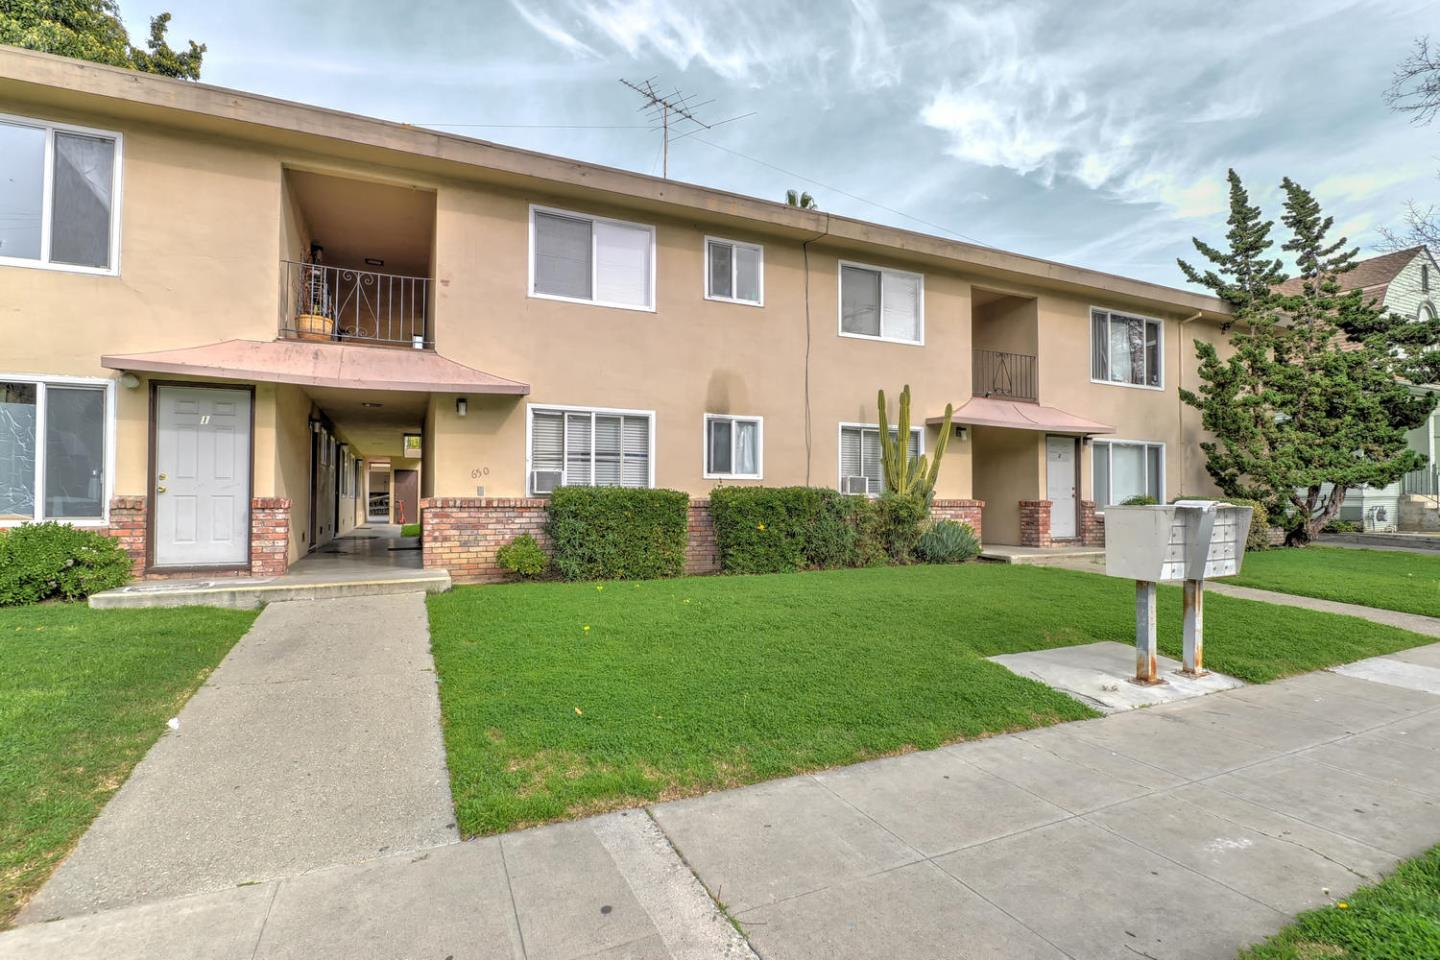 Multi-Family Home for Sale at 650 S 8th Street San Jose, California 95112 United States